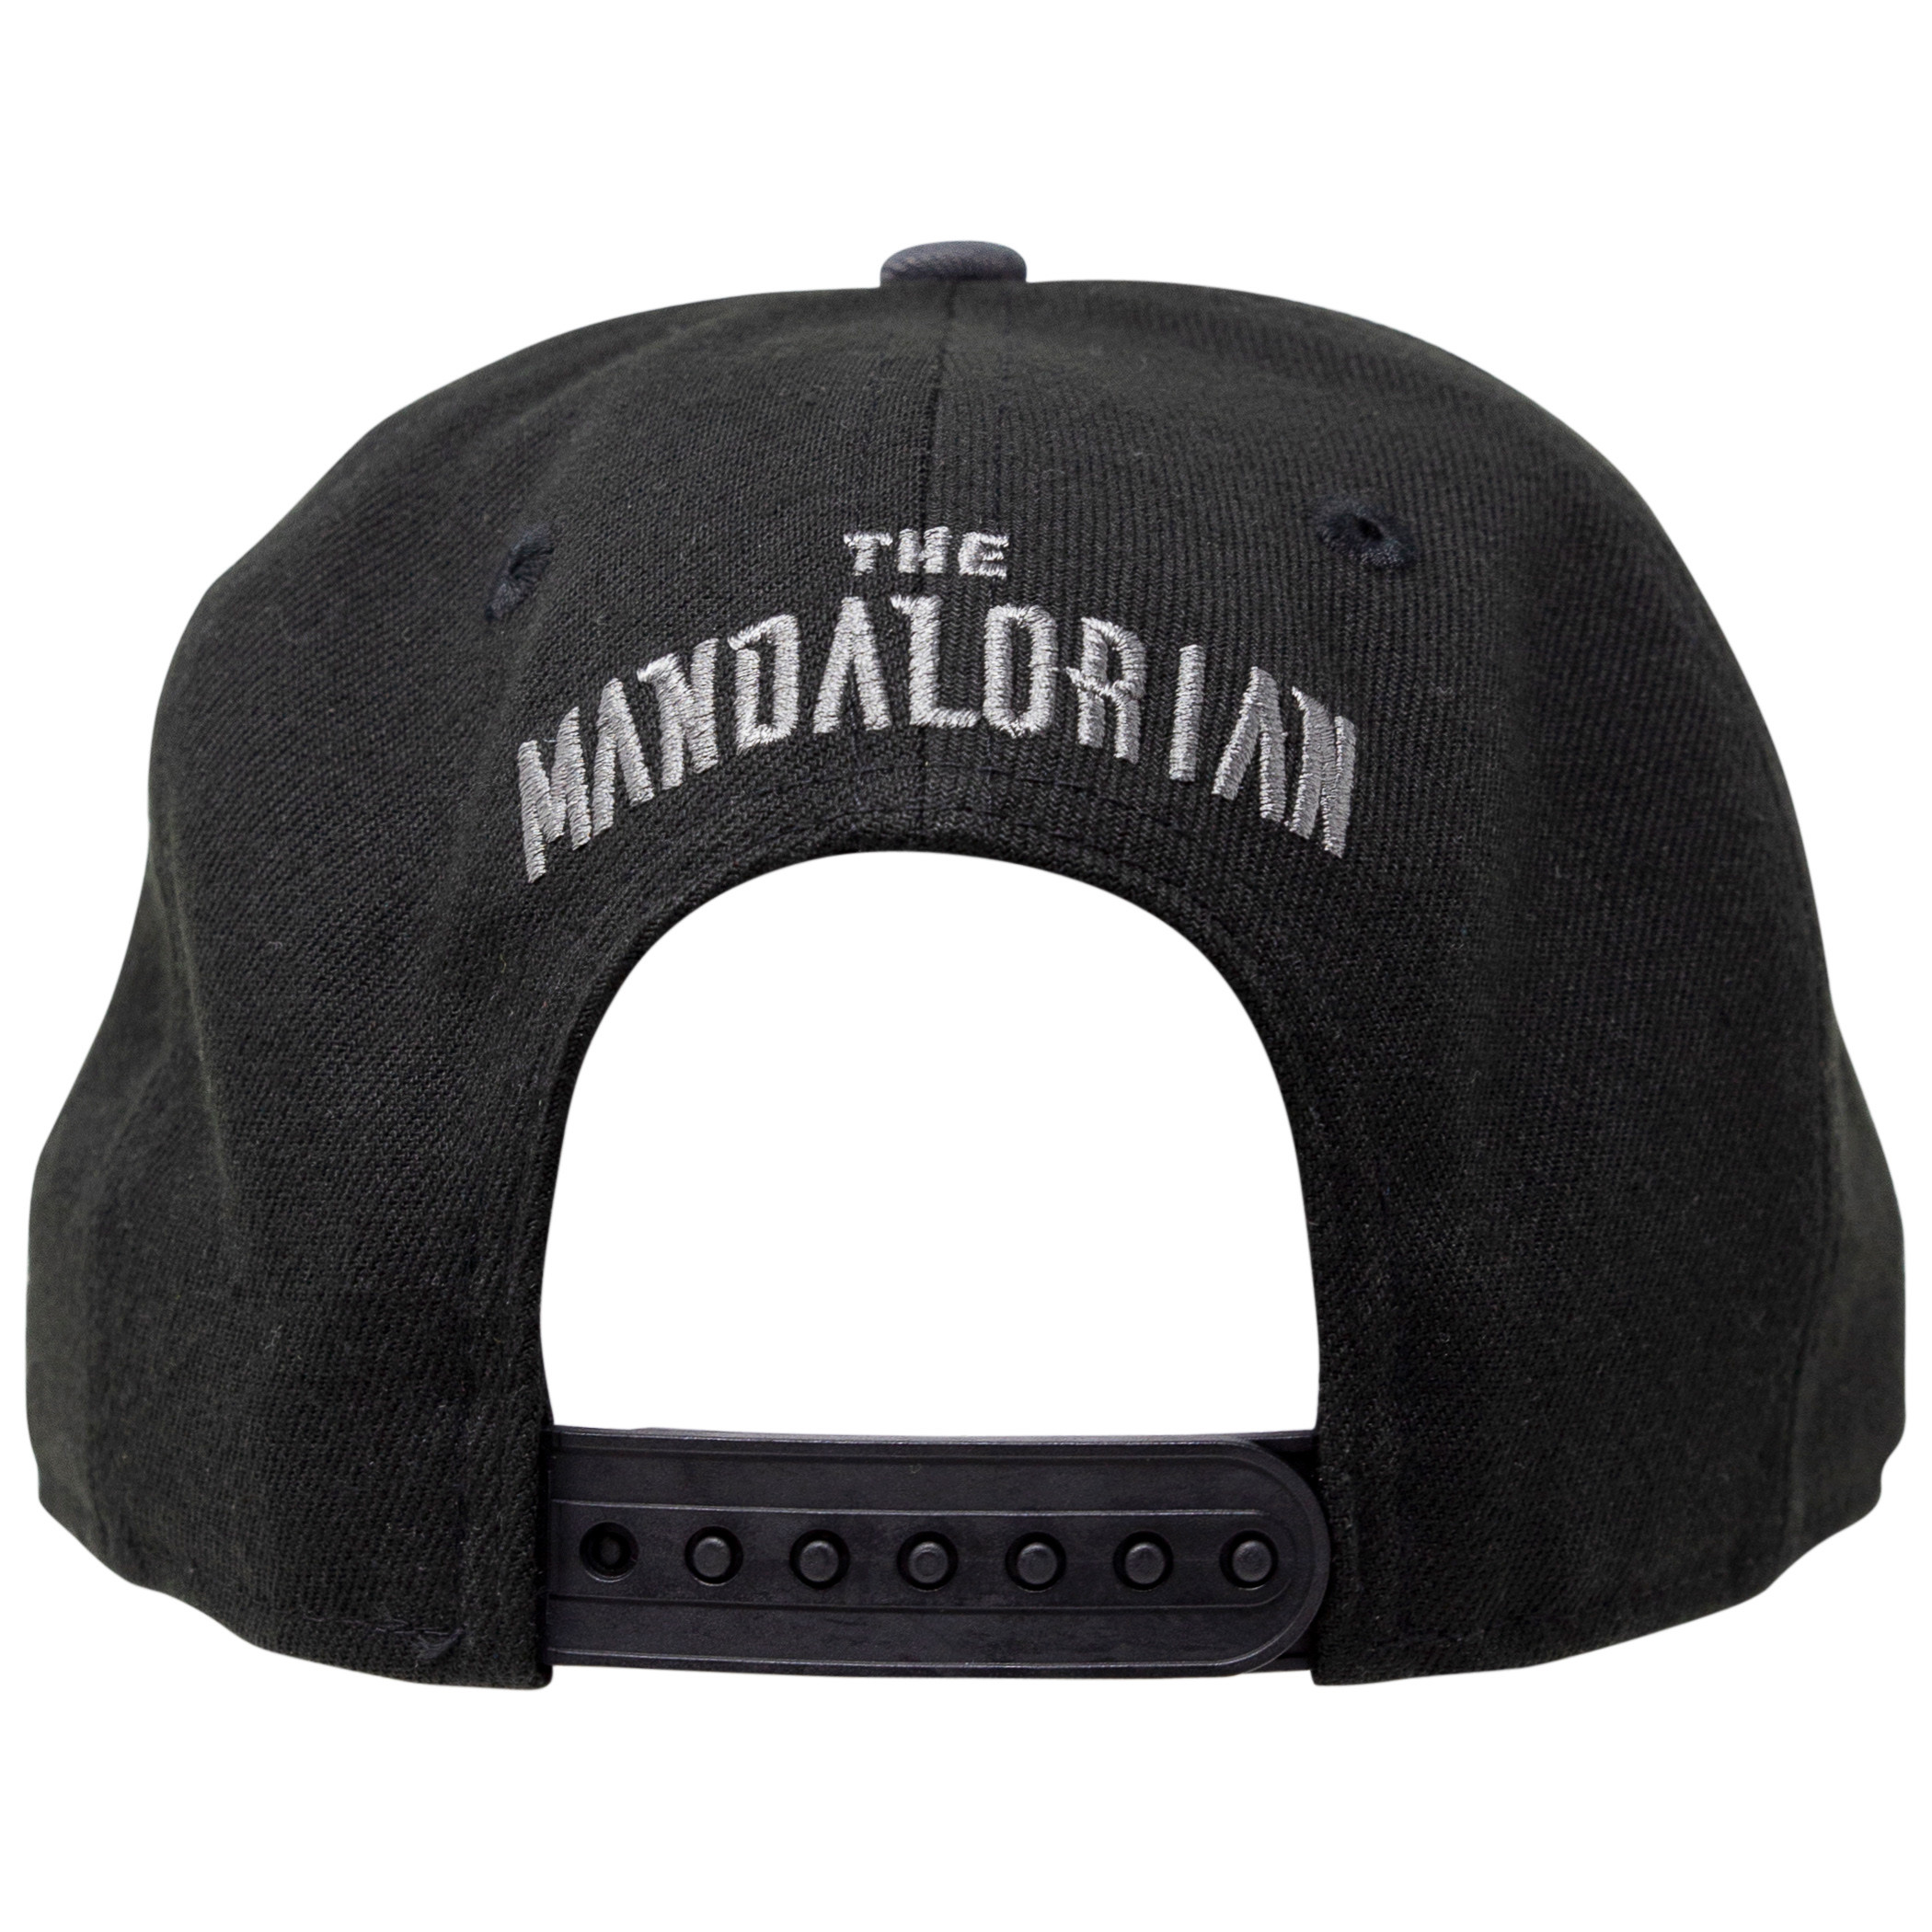 Star Wars The Mandalorian New Era 9Fifty Adjustable Hat